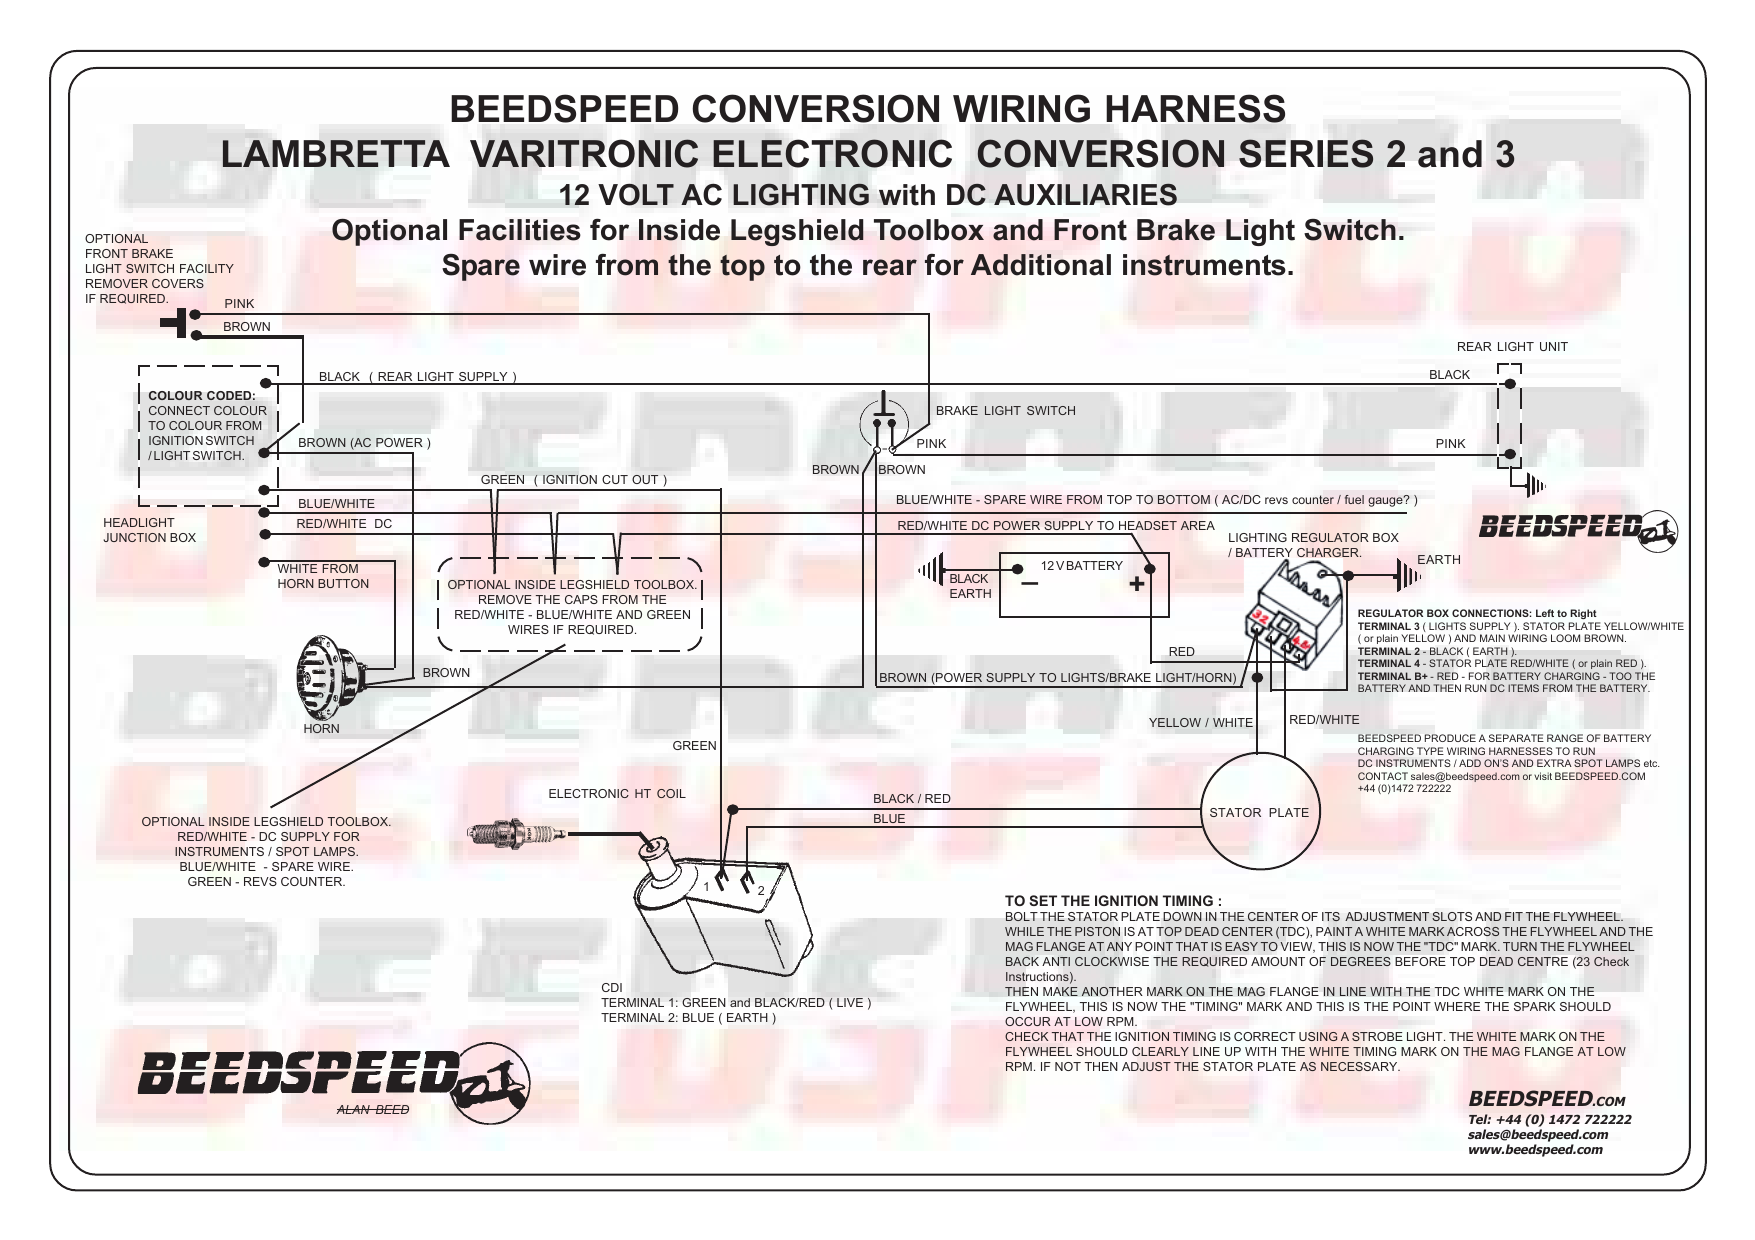 beedspeed conversion wiring harness lambretta. Black Bedroom Furniture Sets. Home Design Ideas